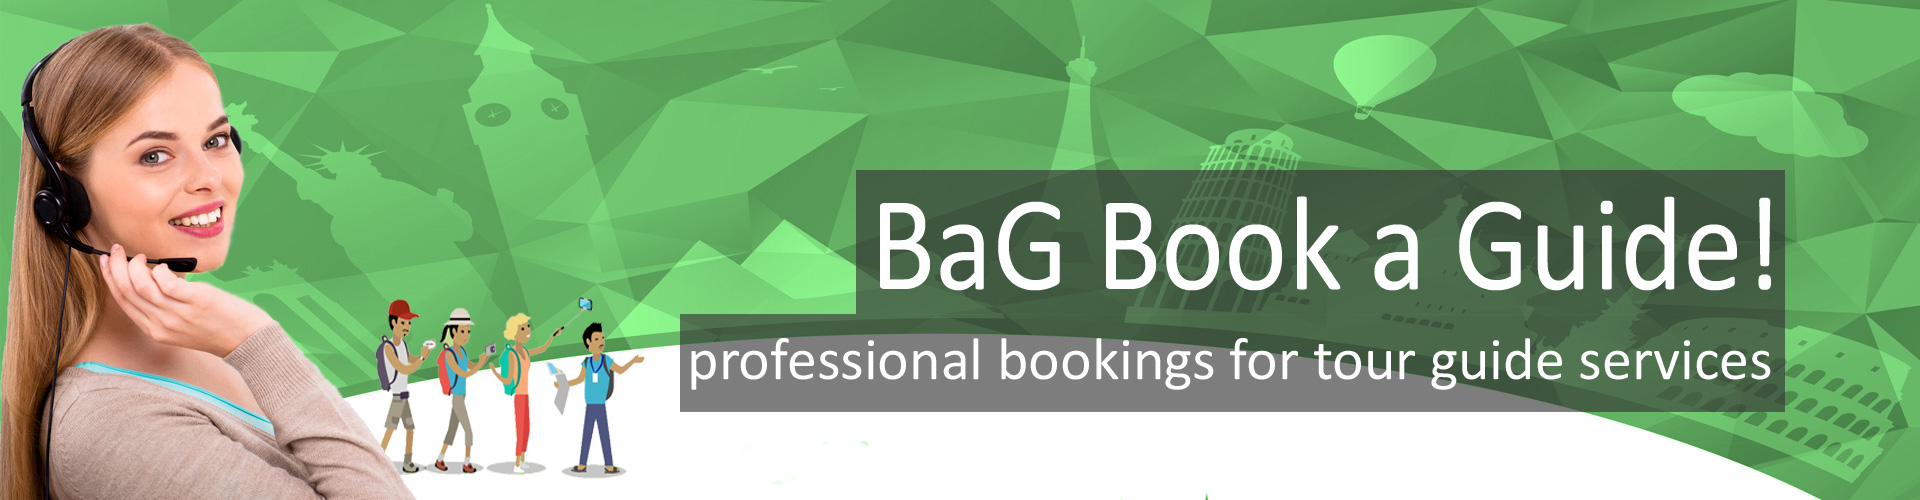 bag-book-a-guide-green-text